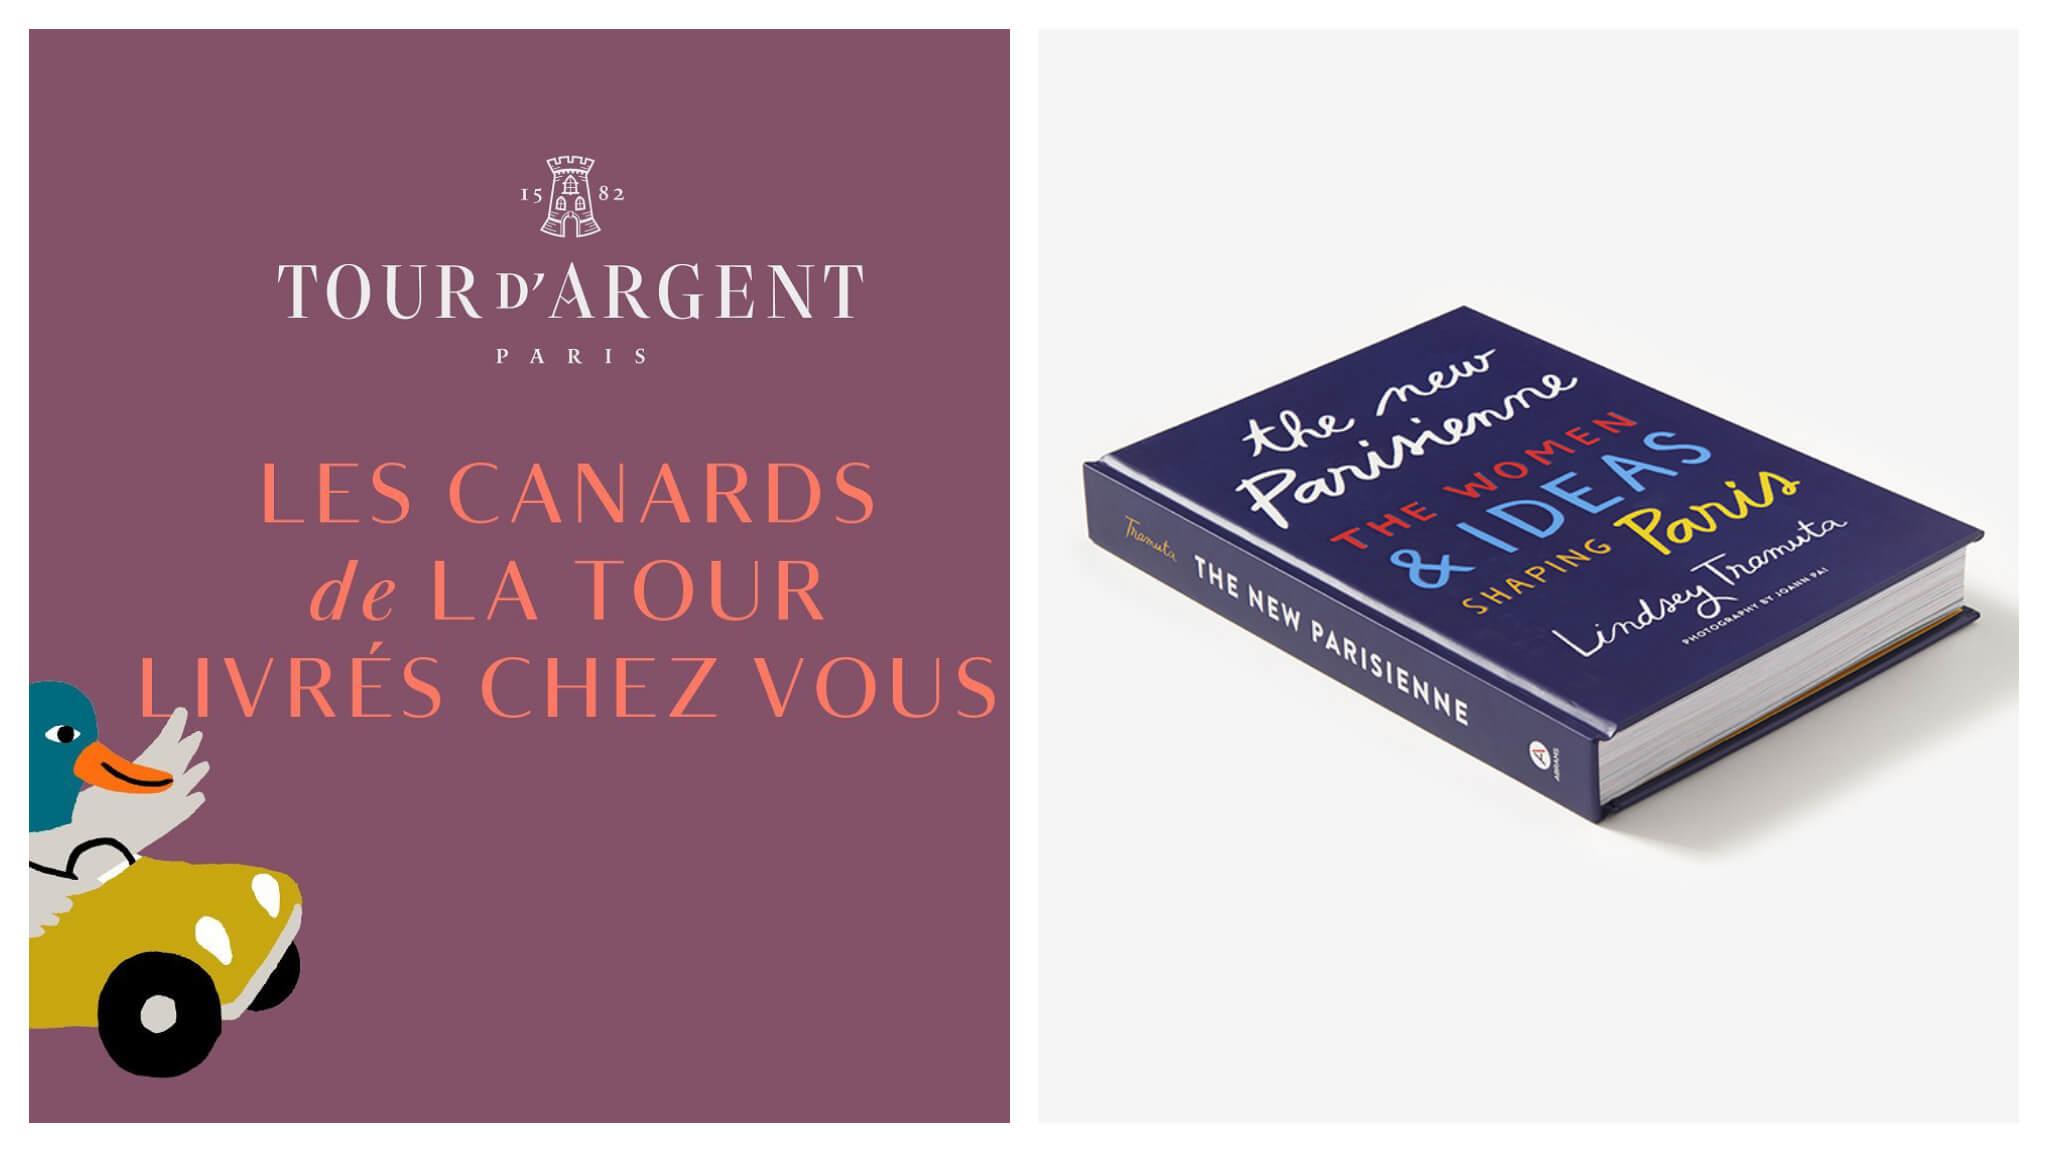 "Left: An image from the Tour d'Argent with a duck driving a car and waving with his left wing. The text reads, ""Les canards de la tour livrés chez vous,"" in english, ""The tower ducks deliver to your home."" Right: The cover of The New Parisienne: The Women & Ideas Shaping Paris by Lindsey Tramuta"